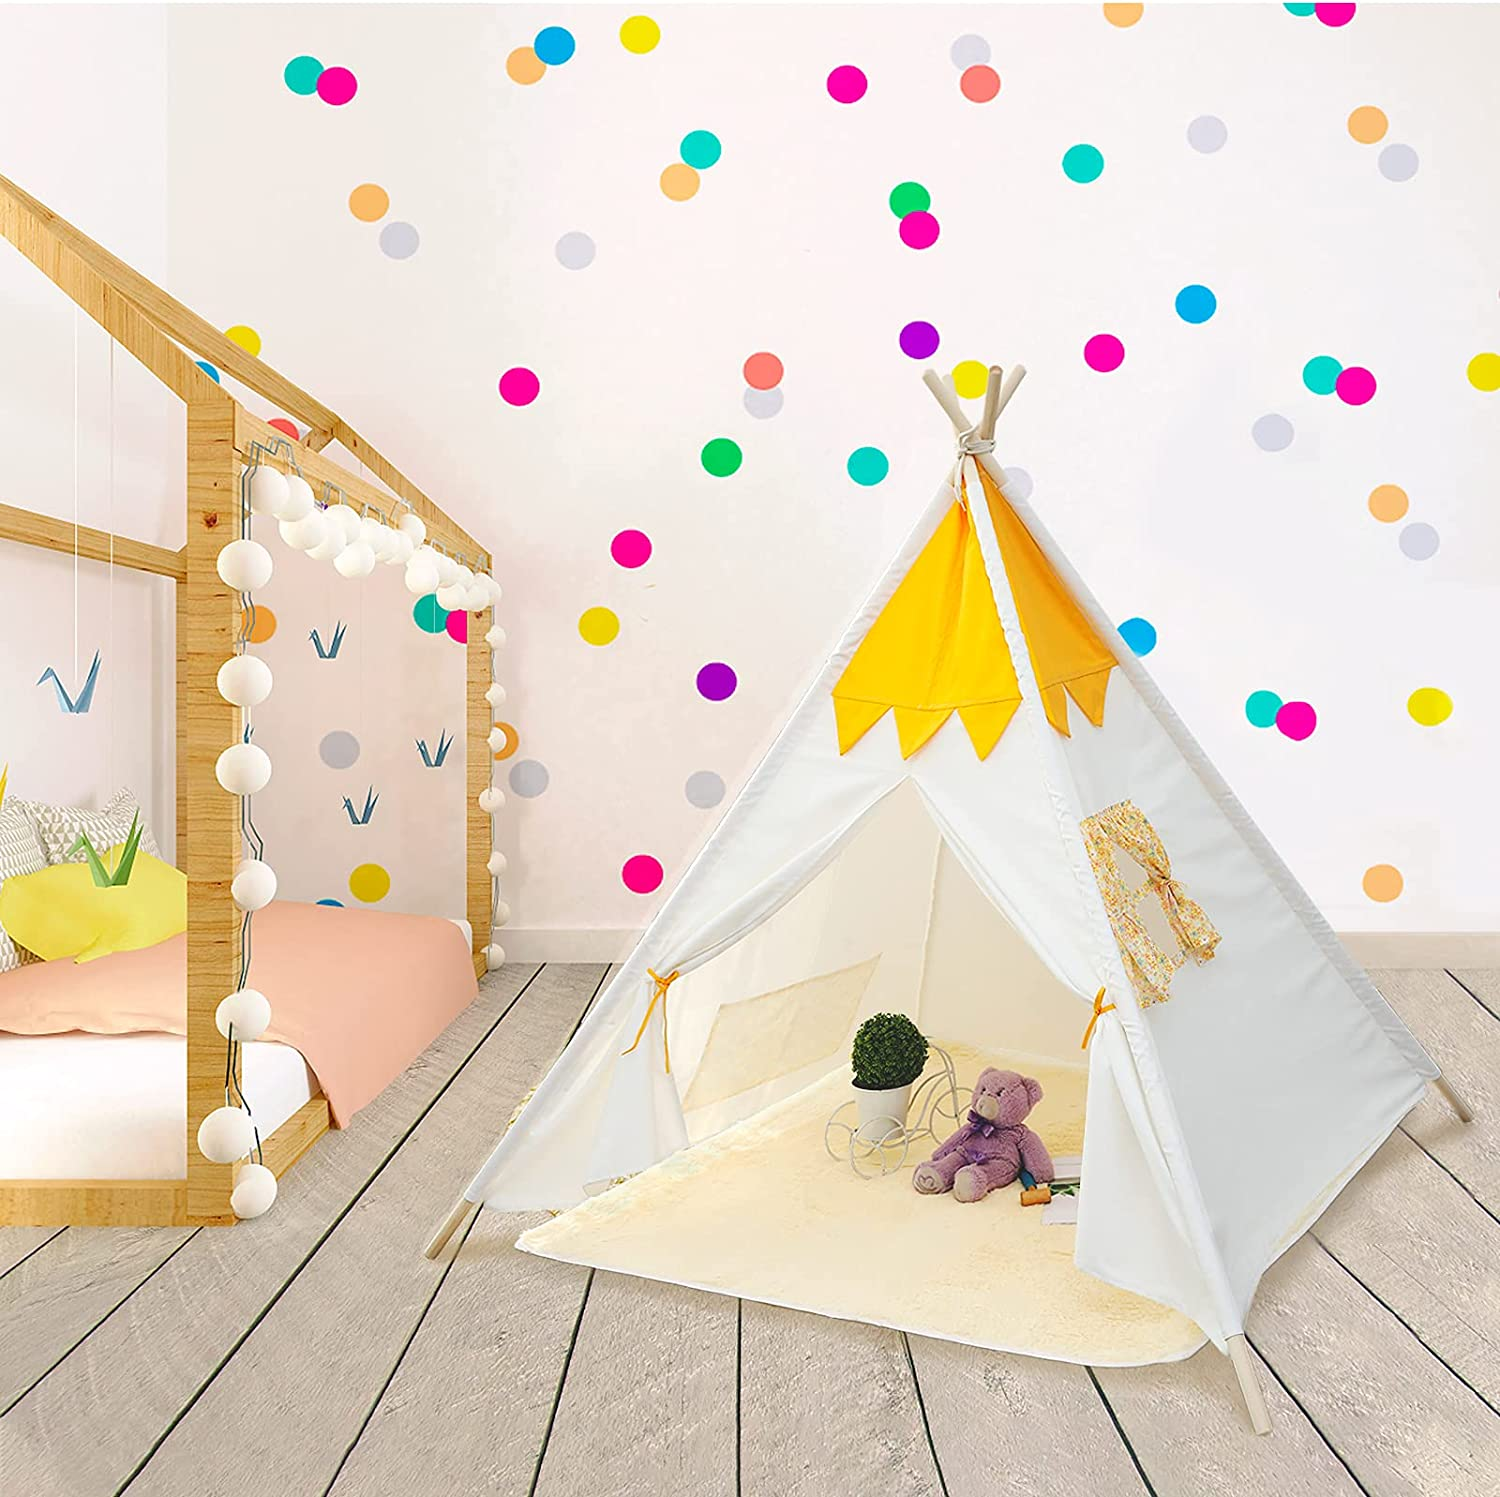 Teepee Tent for Kids Foldable Play Tent for Girls Boys with Play Mat Kids Canvas Tent Children Decor Tipi Toddler Playhouse for Indoor Outdoor Toys for Kids Birthday Gift